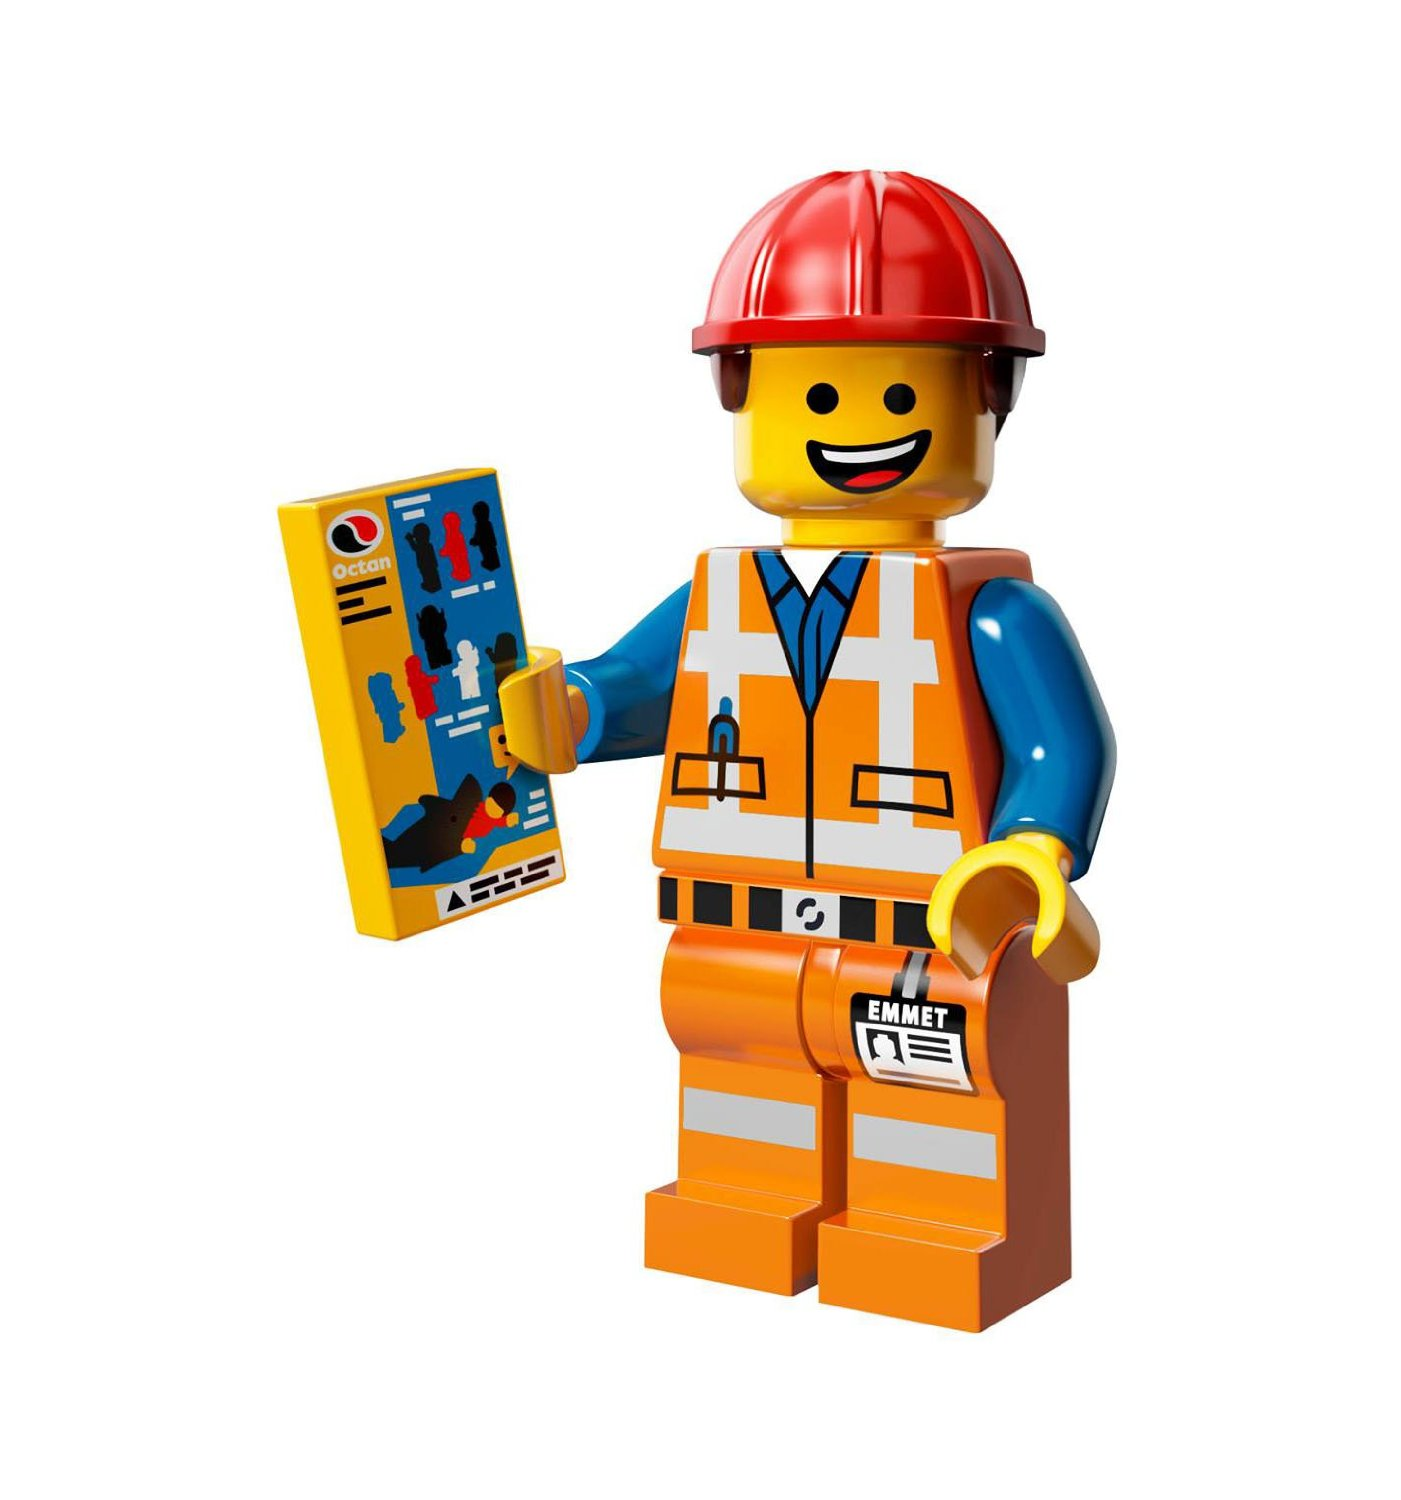 Buy Lego Movie Loose Emmet Minifigure With Piece Of Resistance Grin